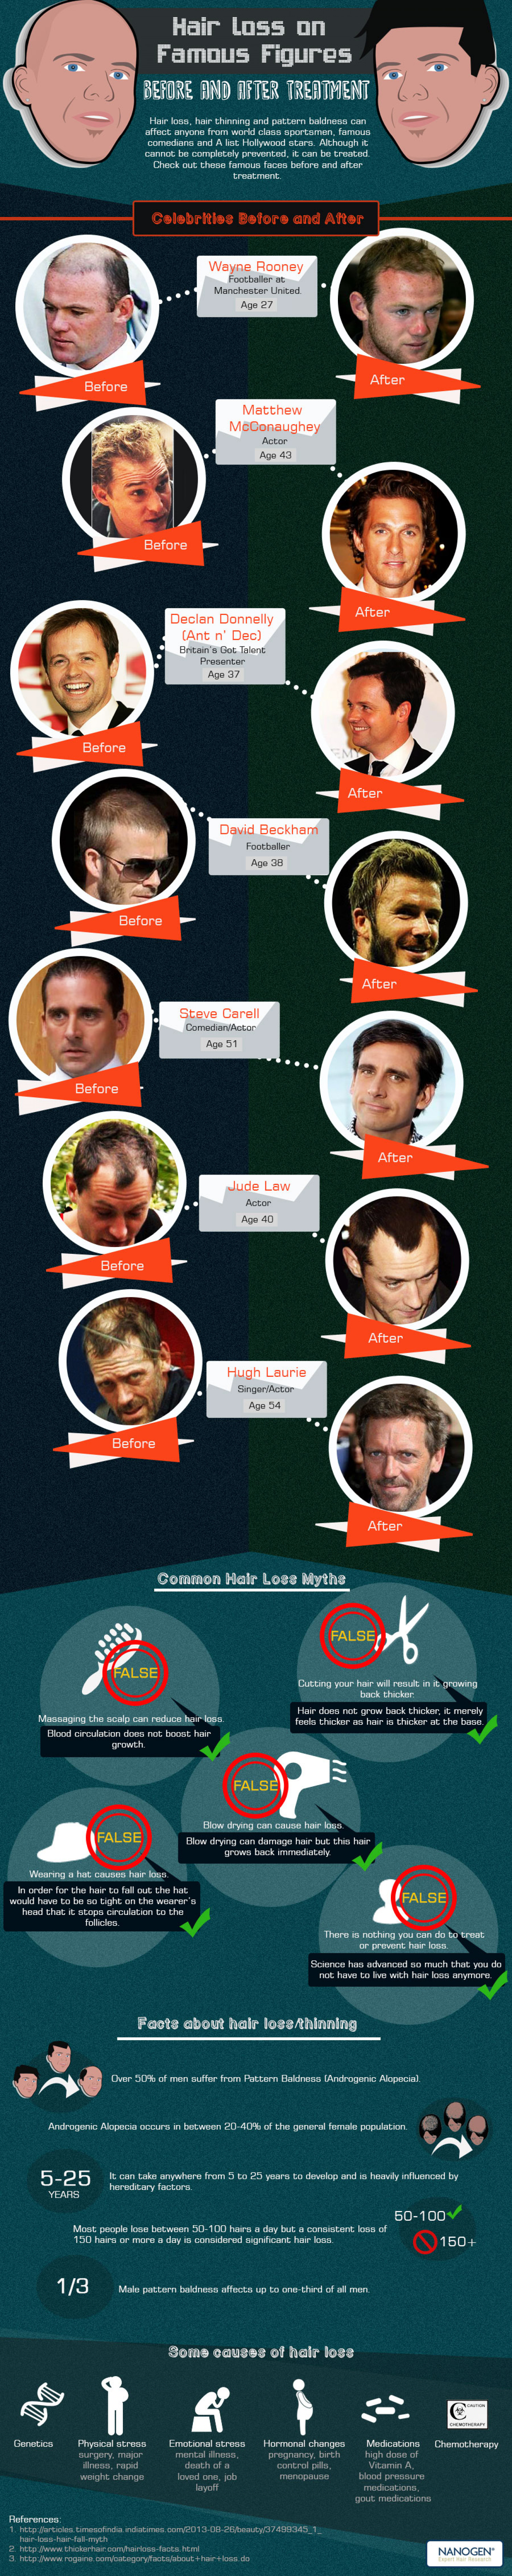 Hair Loss on Famous Figures: Before and After Treatment  Infographic